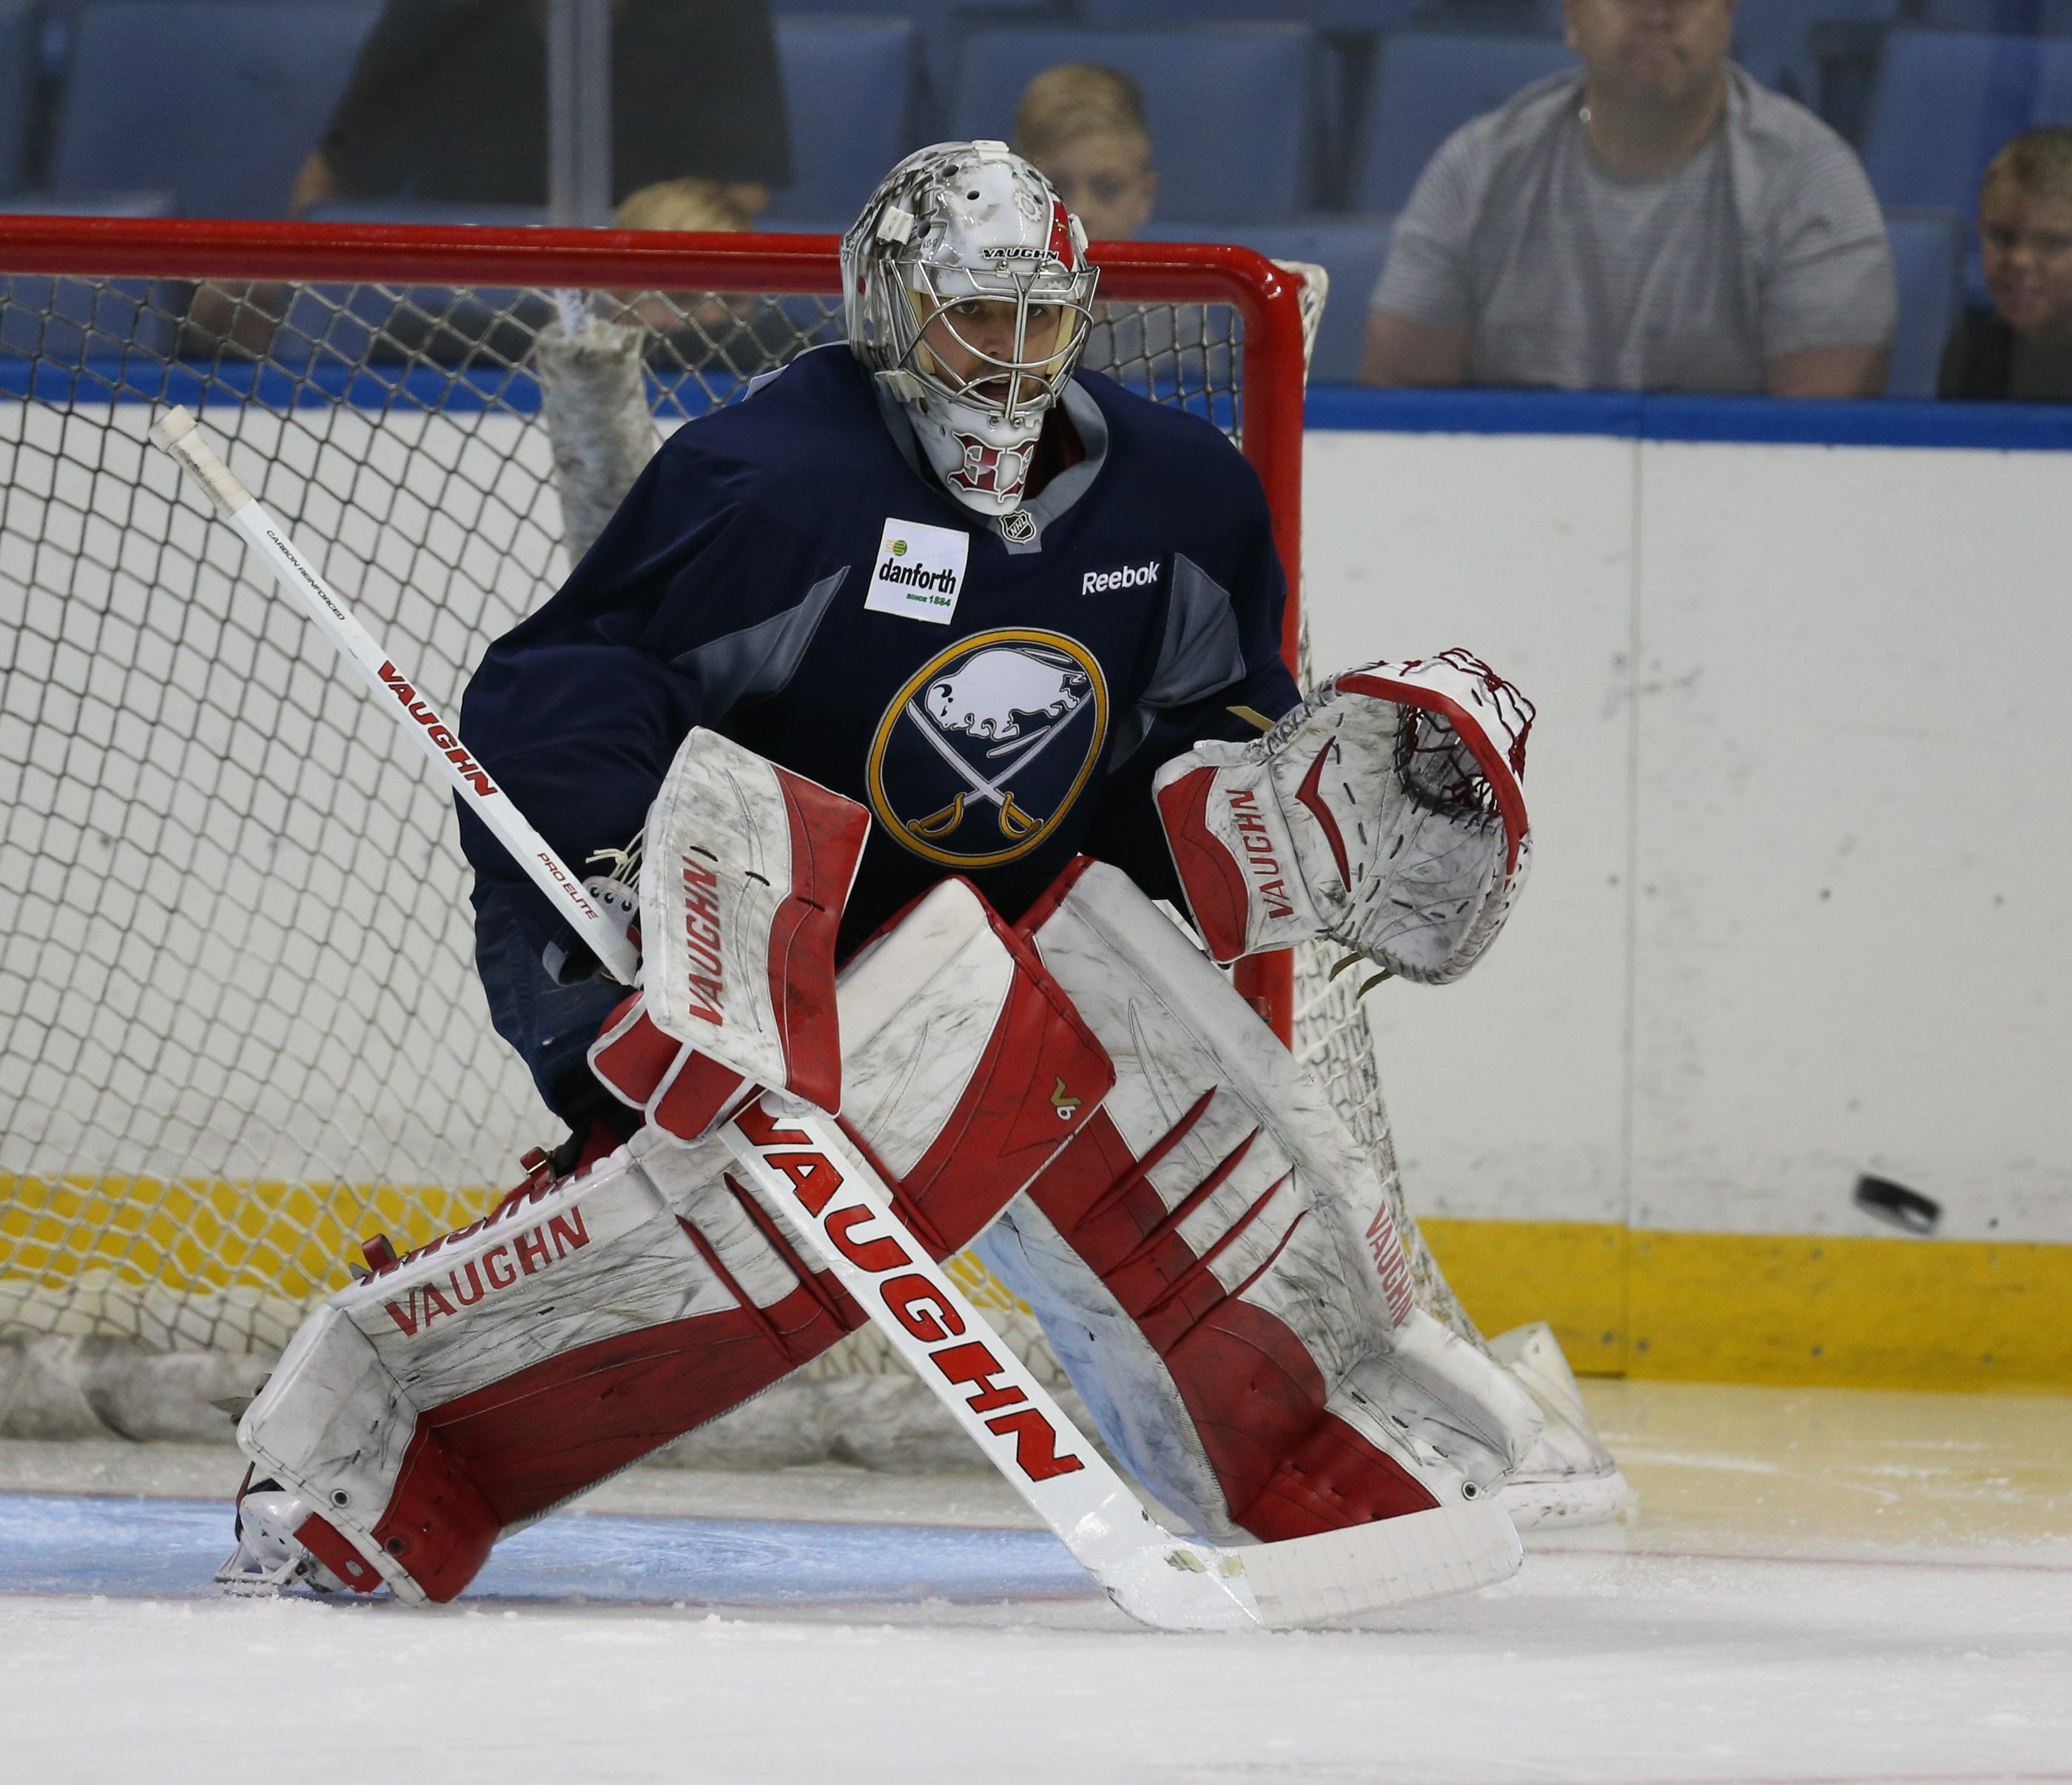 Sabres goalie Jason Kasdorf blocks a shot during the Sabres' Development Camp in July.